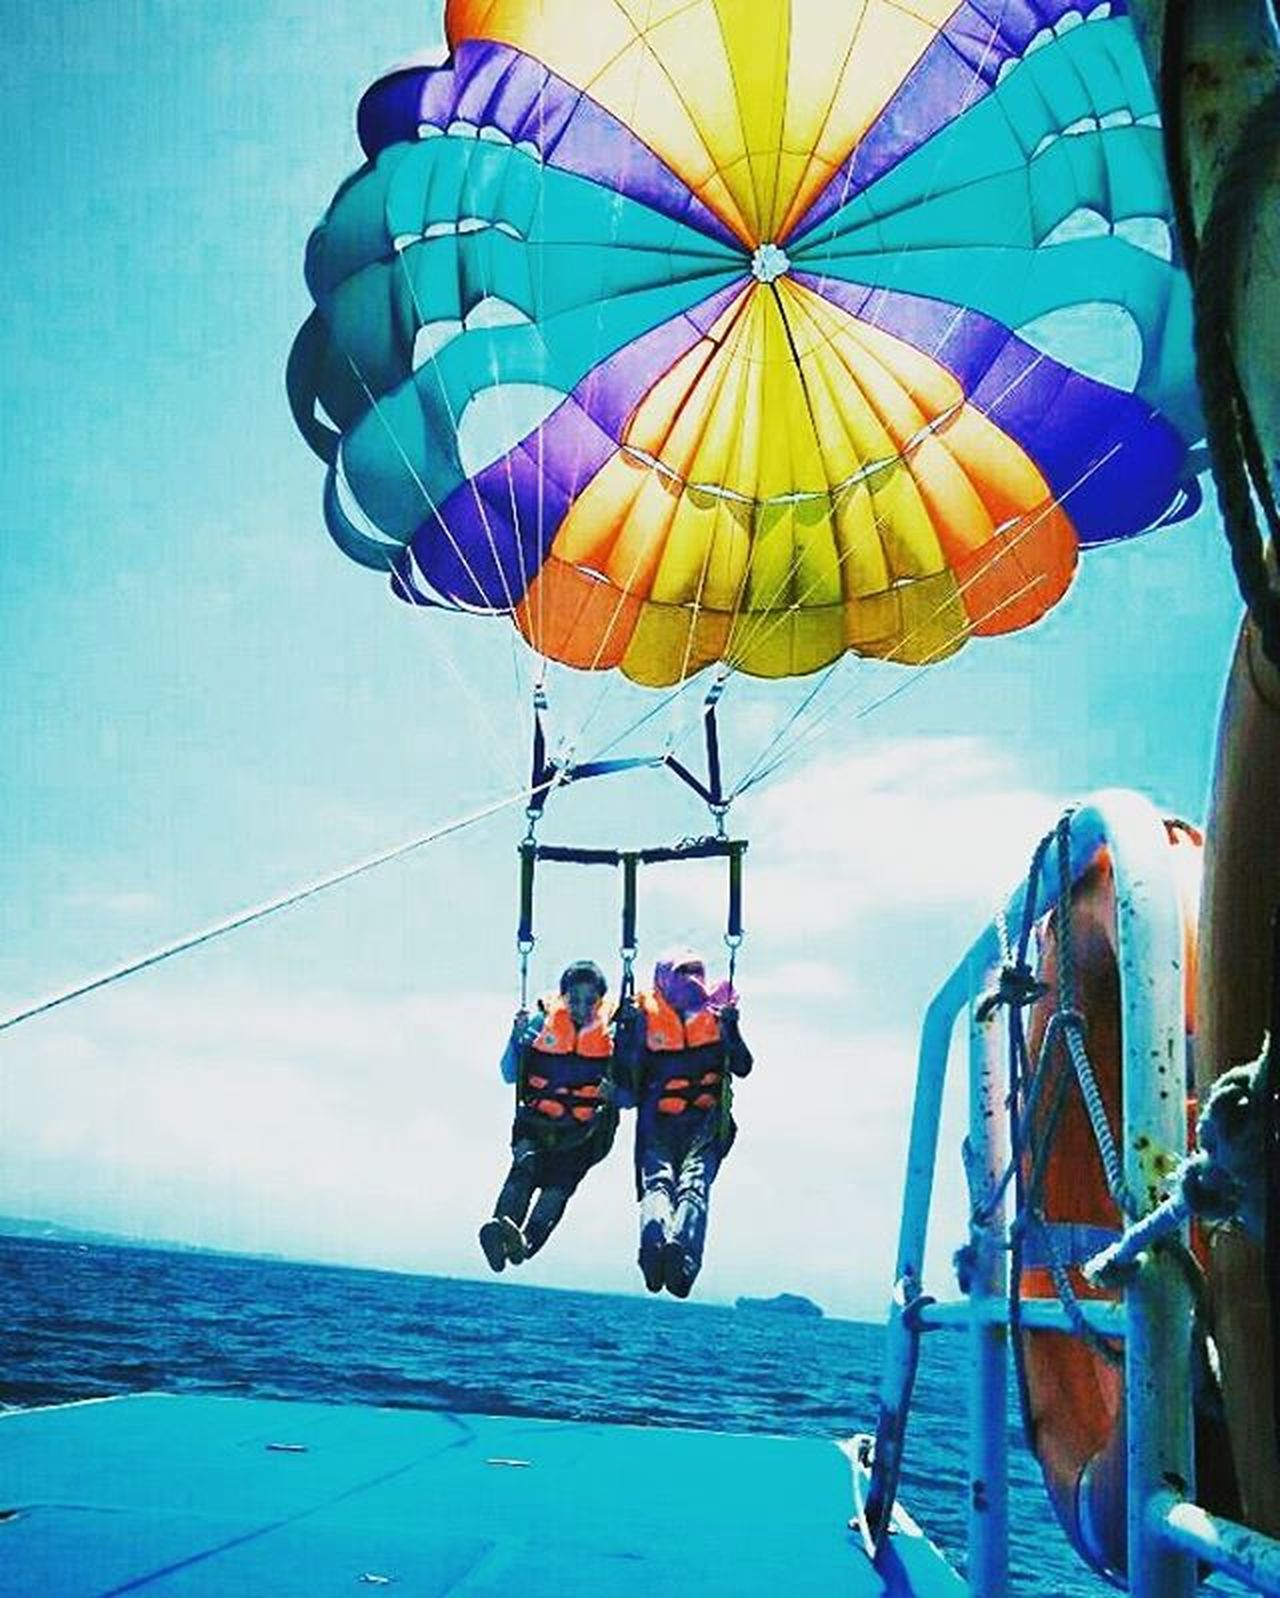 Parasailing, Pulau Sapi, Kota Kinabalu, Sabah. Parasailing Pulausapi Sapiisland Beach Sabah Kotakinabalu Landscape_captures Adventure Landscape Landscapephotography Naturefun Flyinghigh Nature Naturephotography Naturelovers Instanature Beachactivity Fun Beach Beautiful